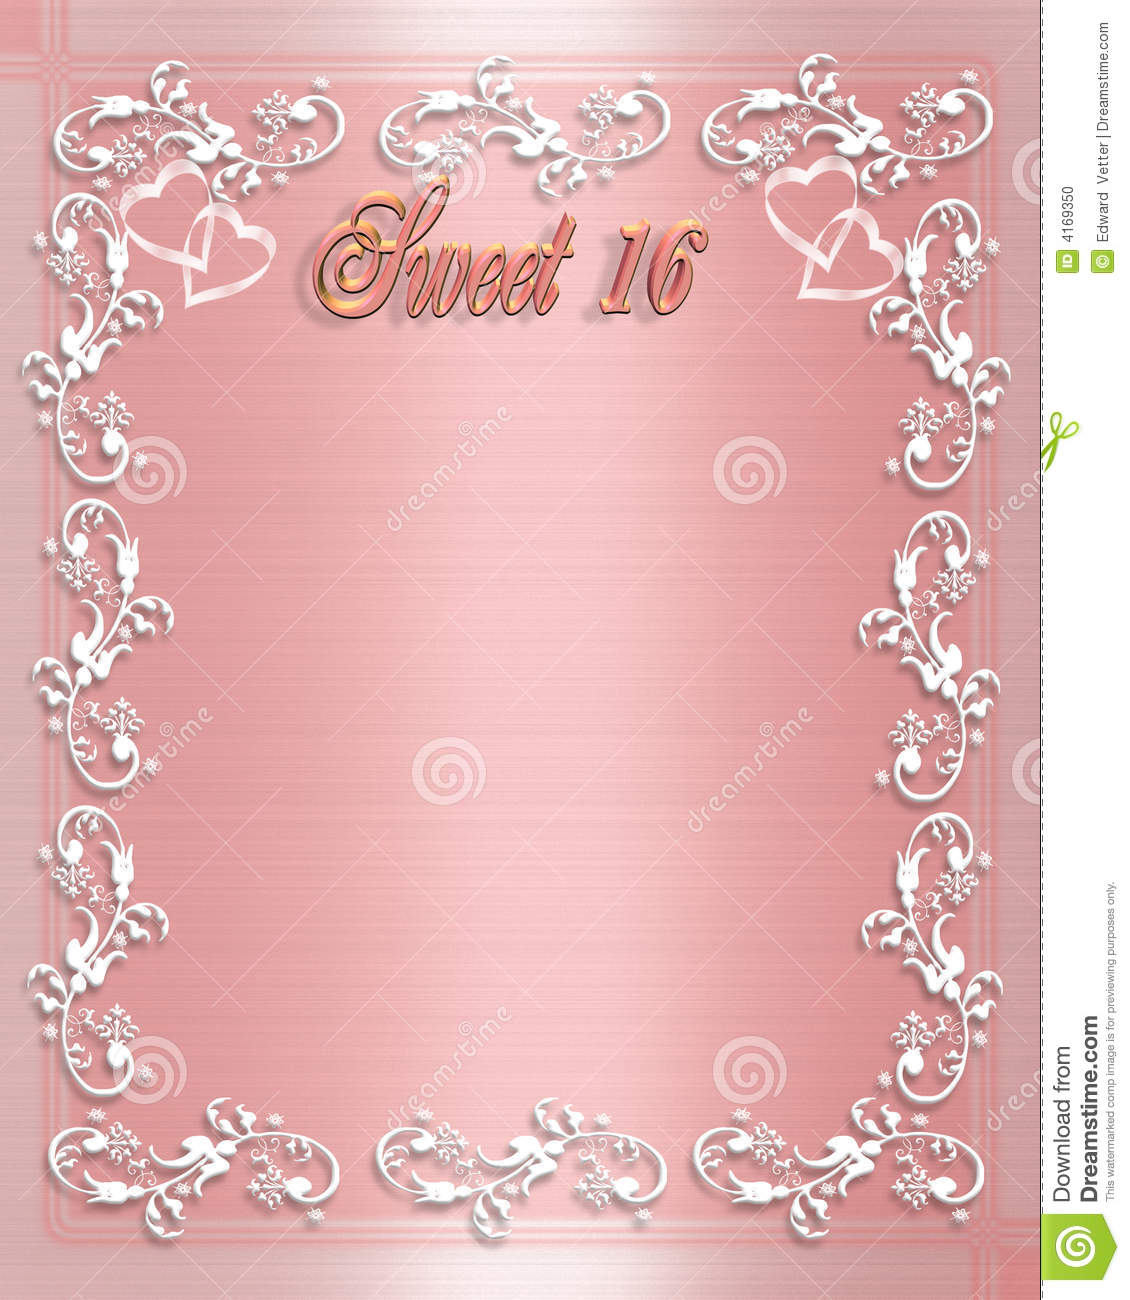 background design for birthday invitation ; sweet-16-birthday-invitation-4169350